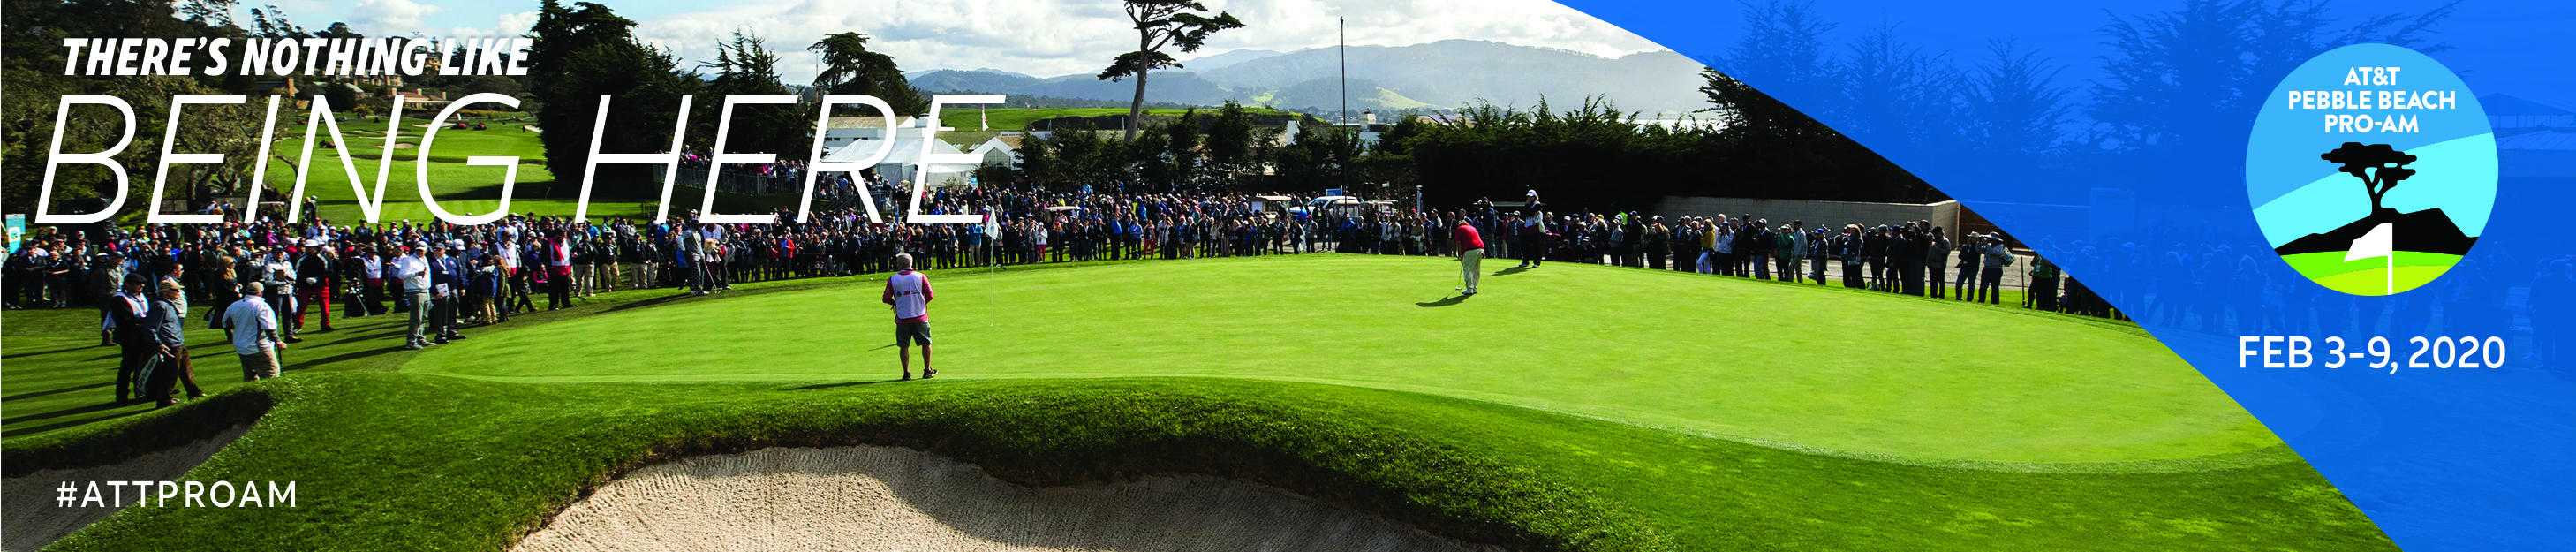 At&T Pebble Beach Pro-Am - There is nothing like being here